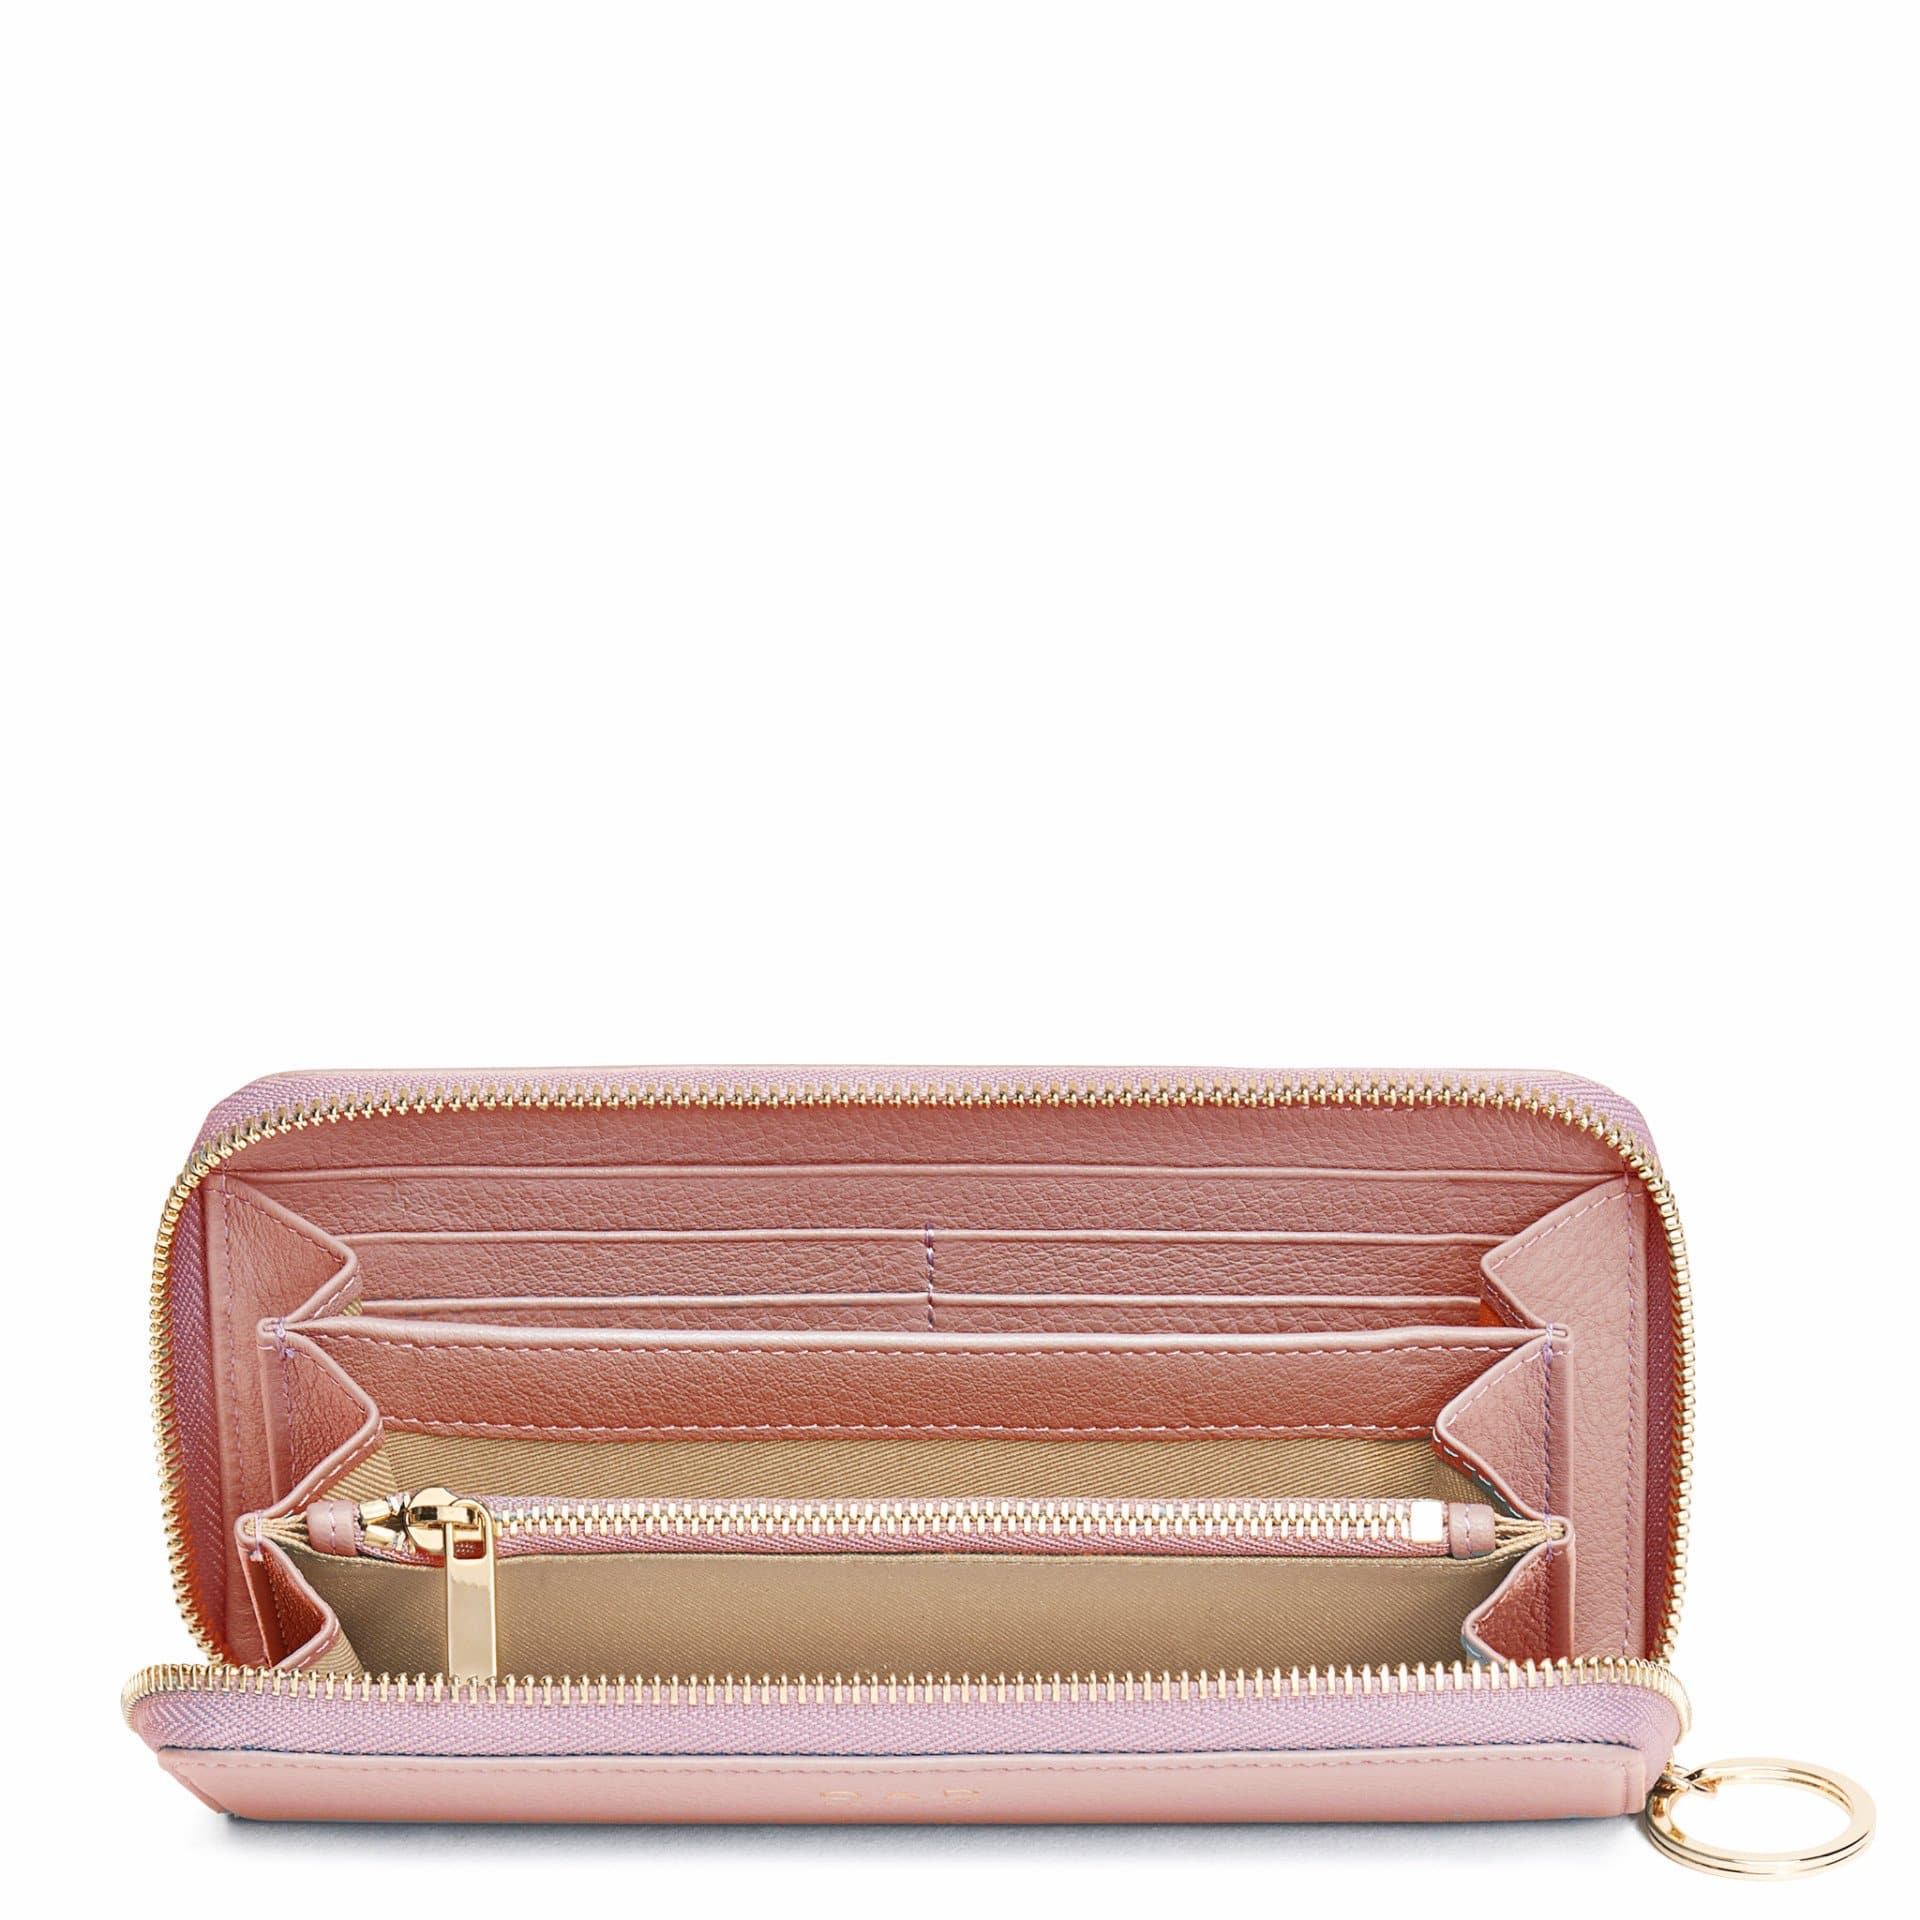 Full Zip Around Wallet - Rose Pink - OAD NEW YORK - 2